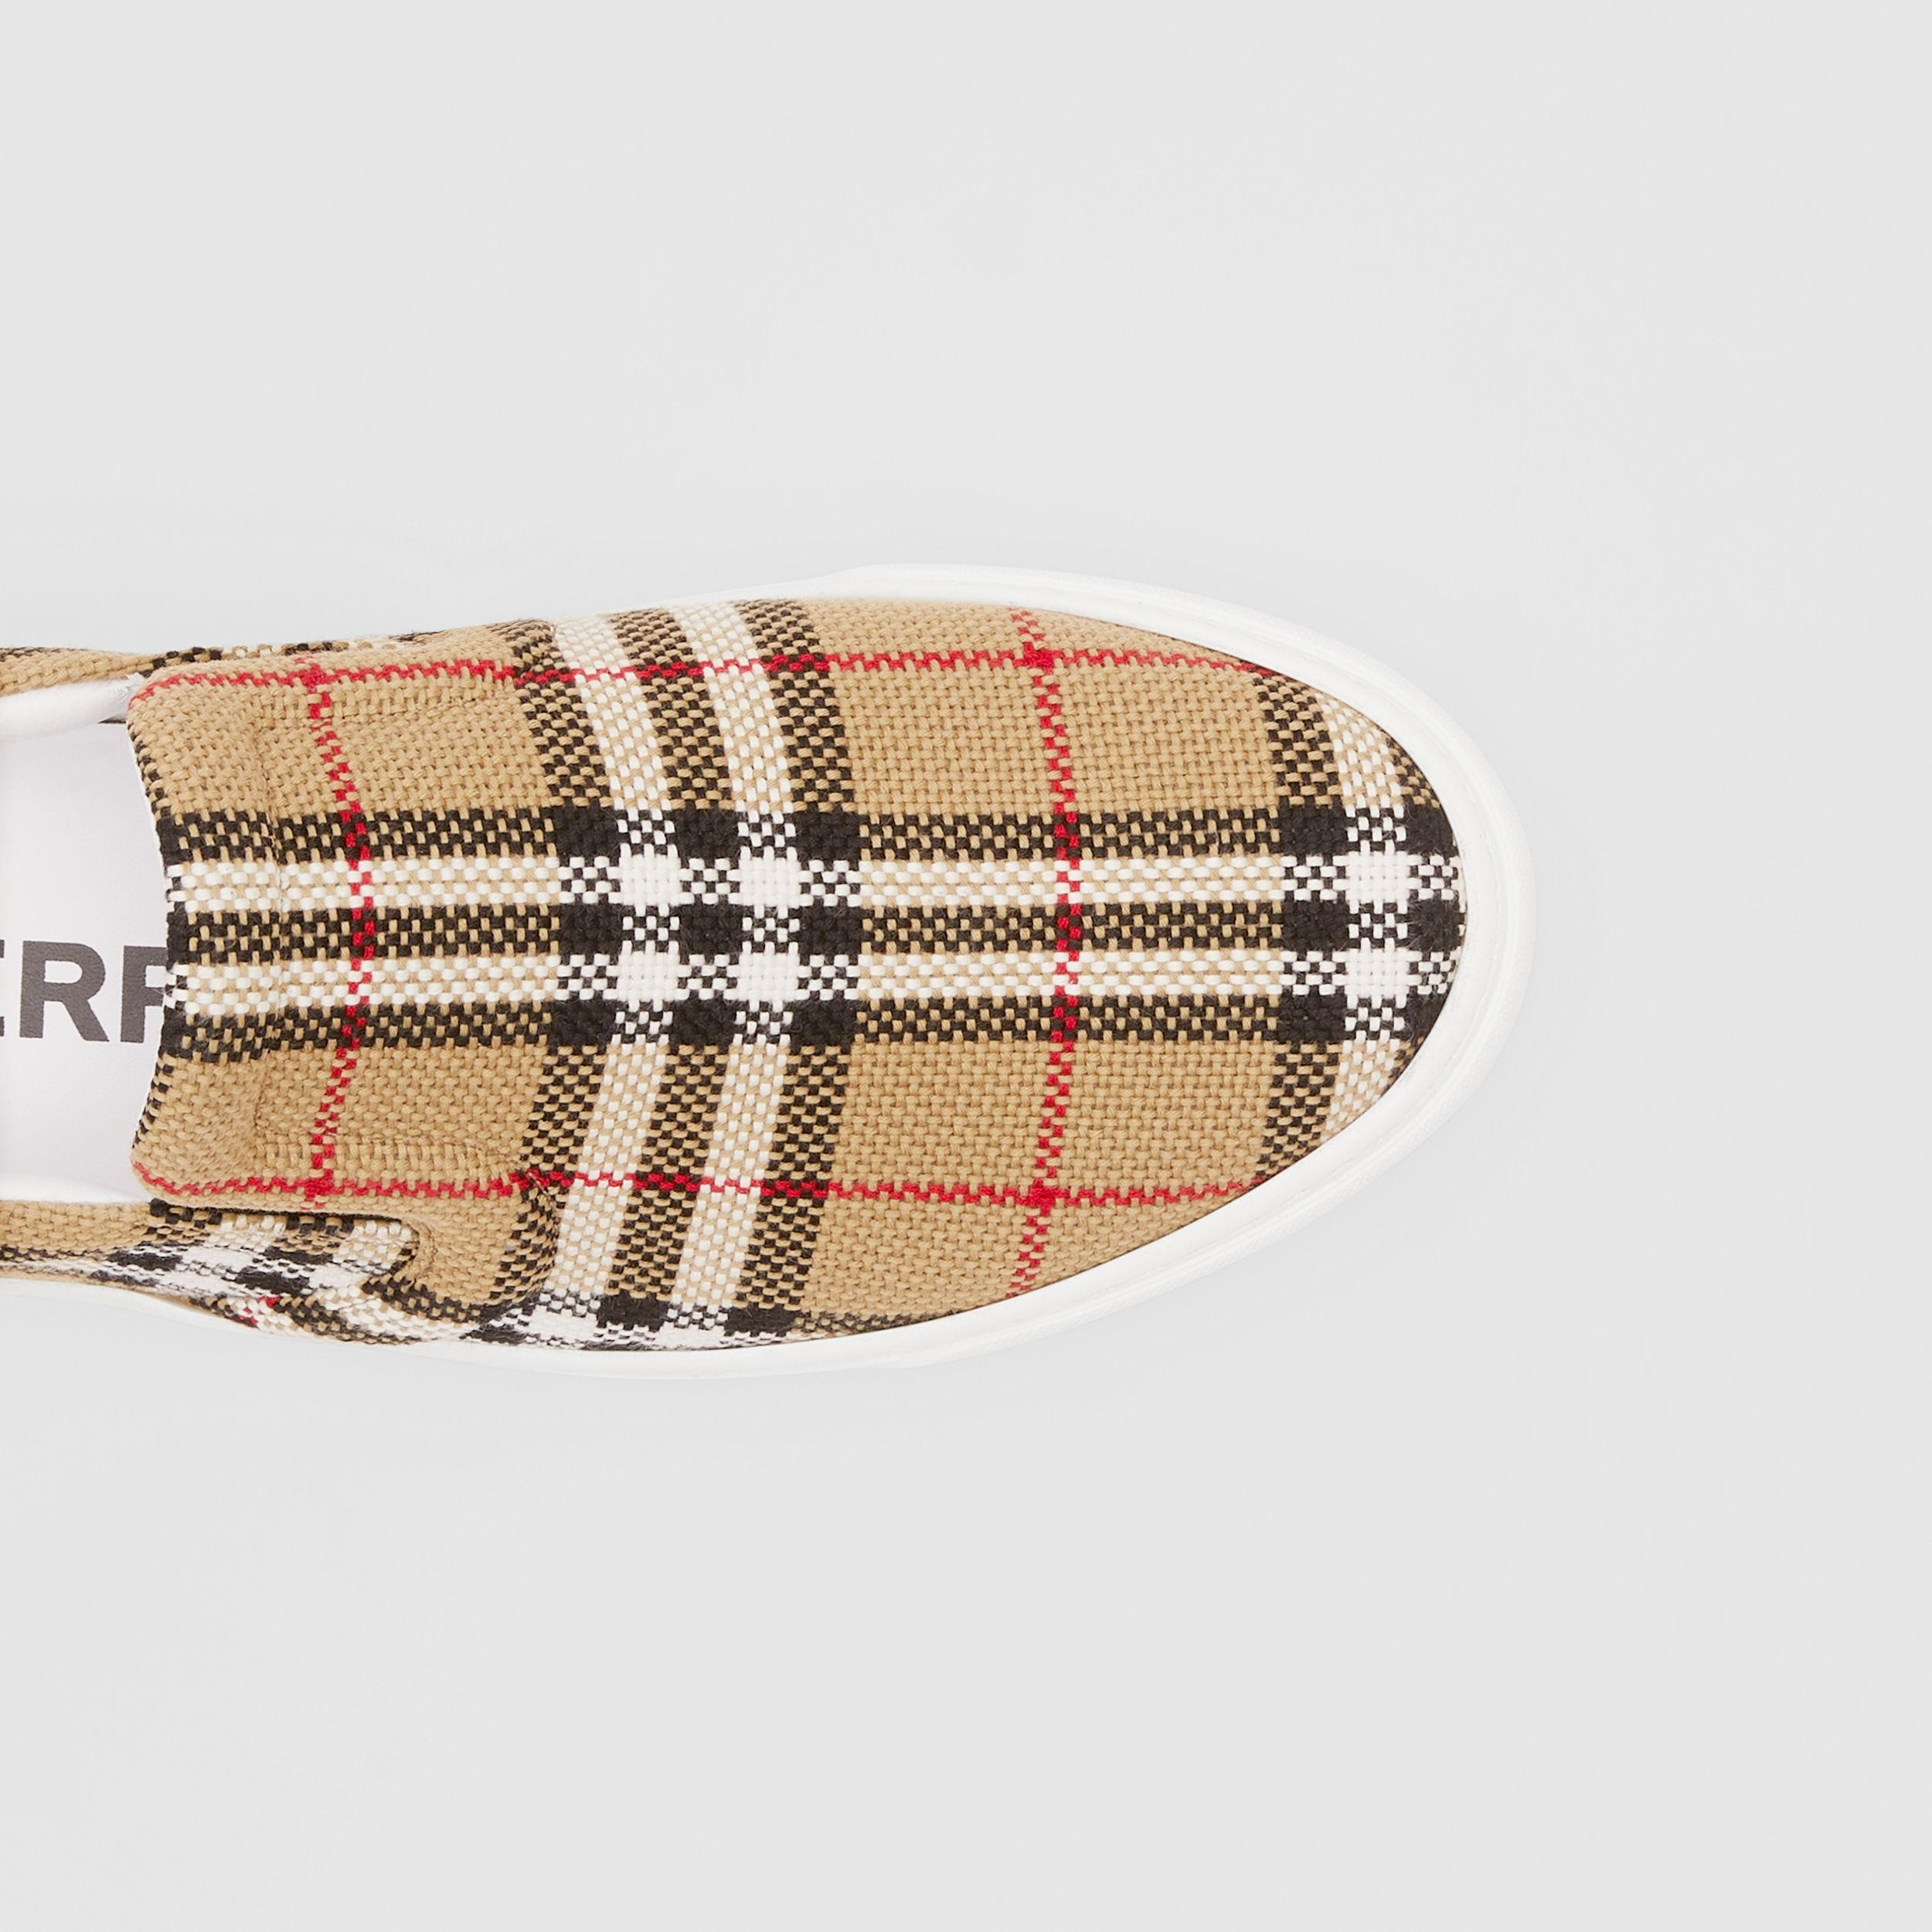 Bio-based Sole Latticed Cotton Slip-on Sneakers in Archive Beige - Men | Burberry United Kingdom - 2